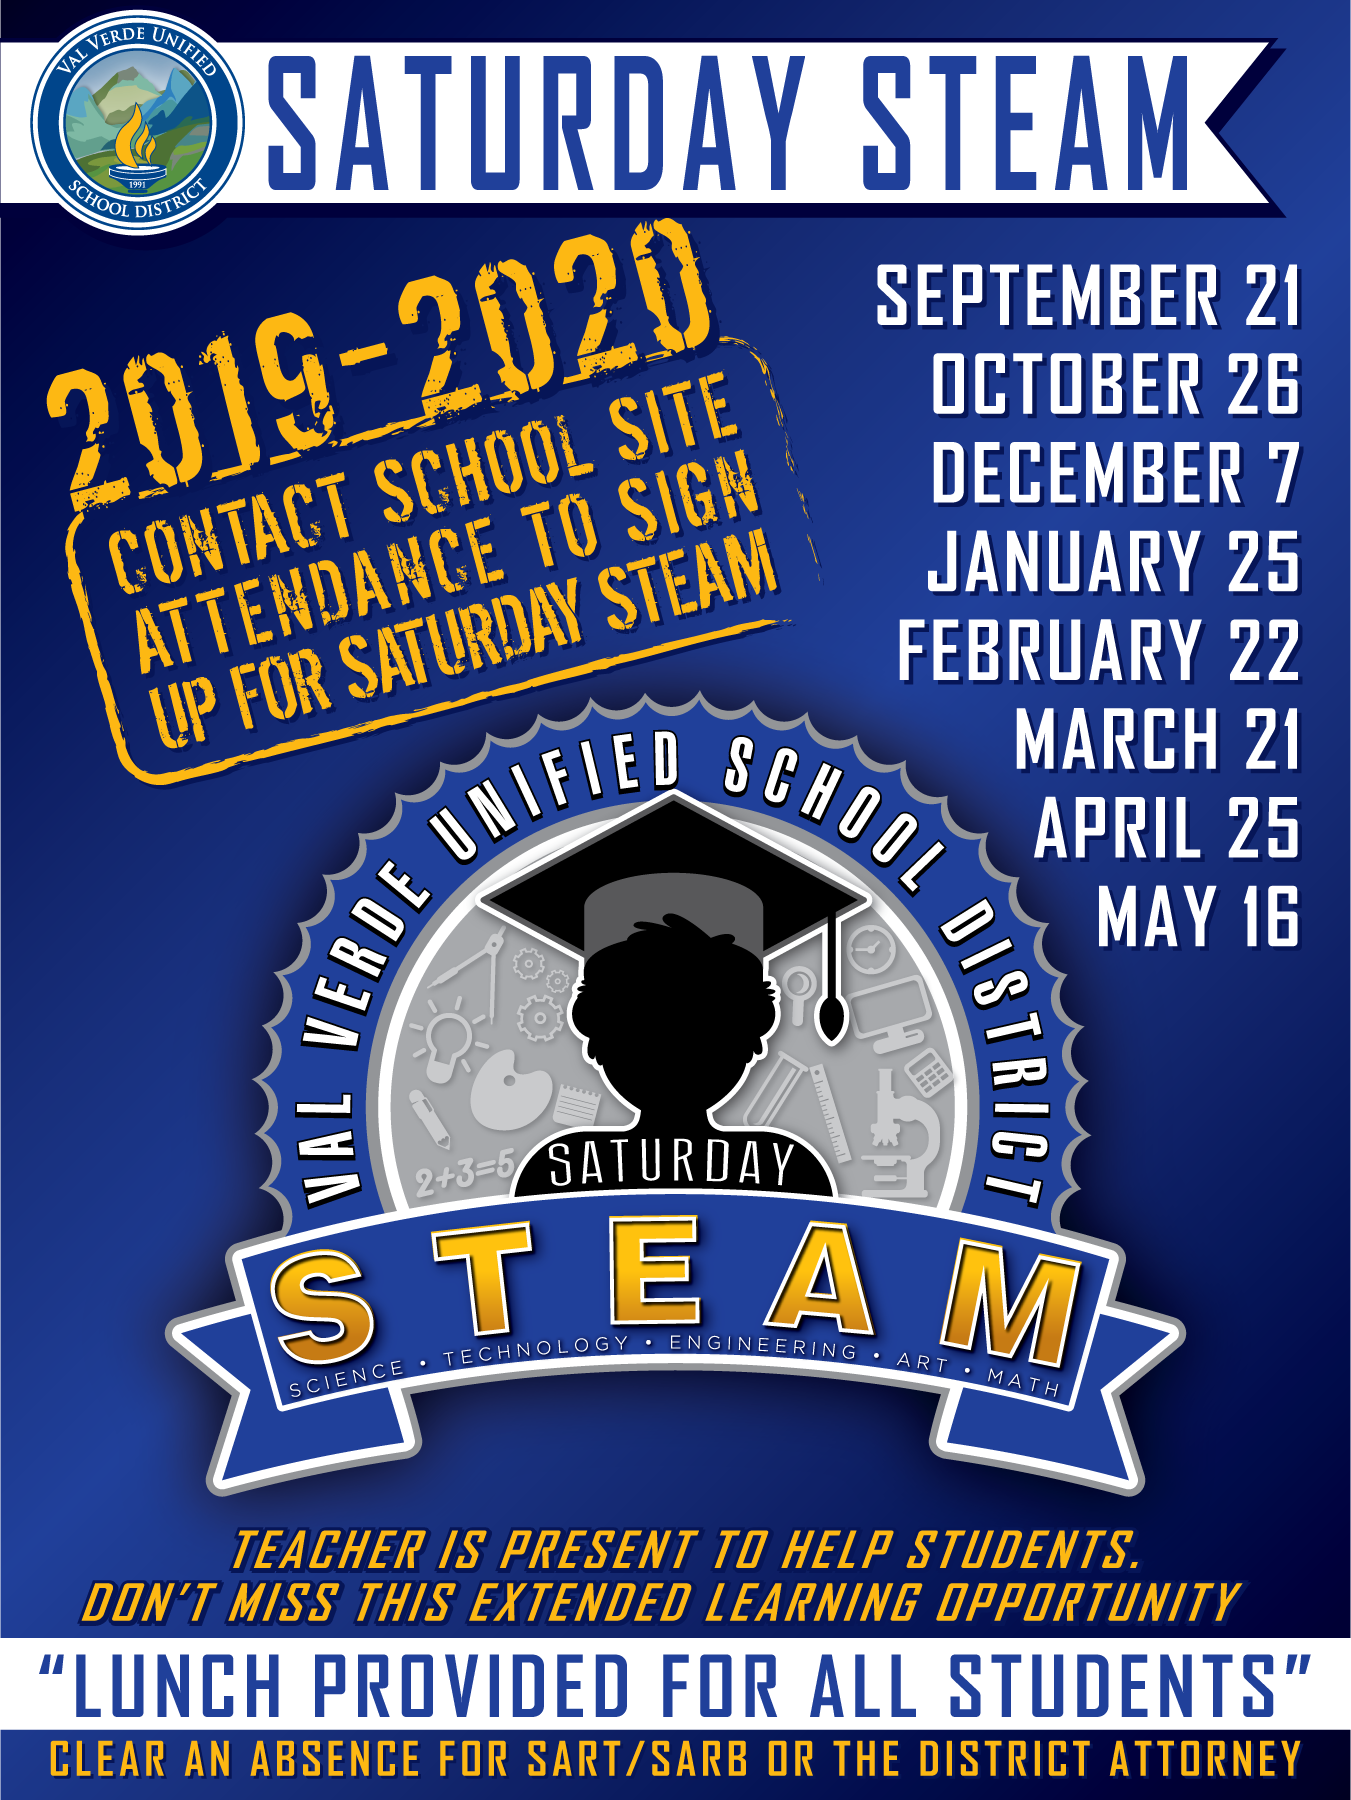 Sign Up For Saturday STEAM School by clicking on the image below.